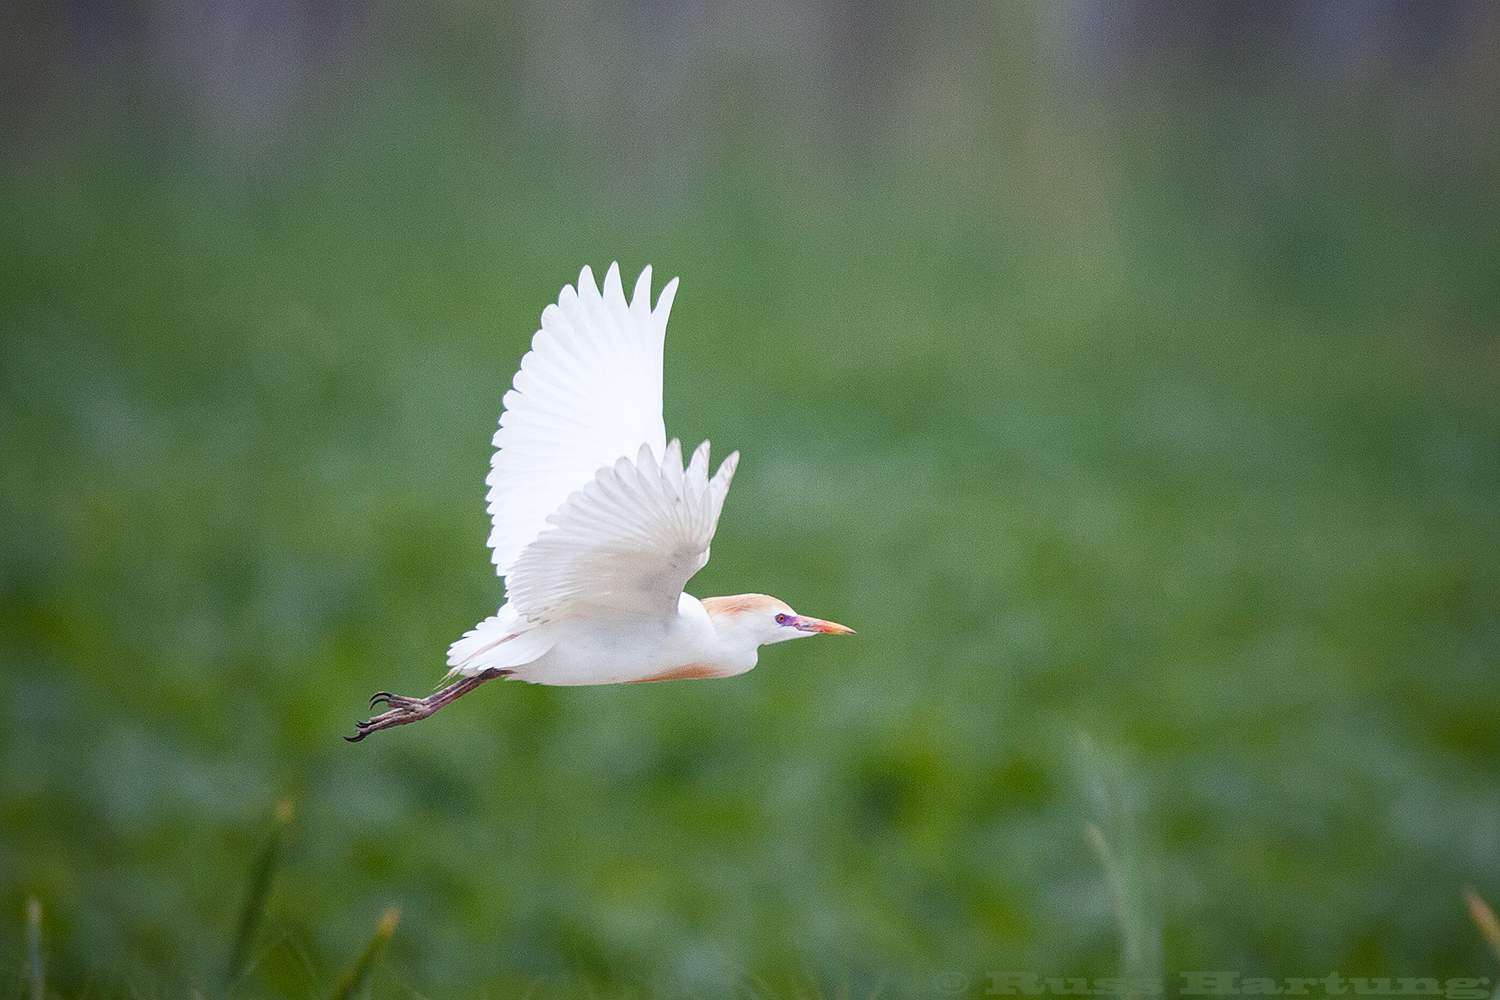 Cattle Egret in flight. Orlando Wetlands Park, Florida.